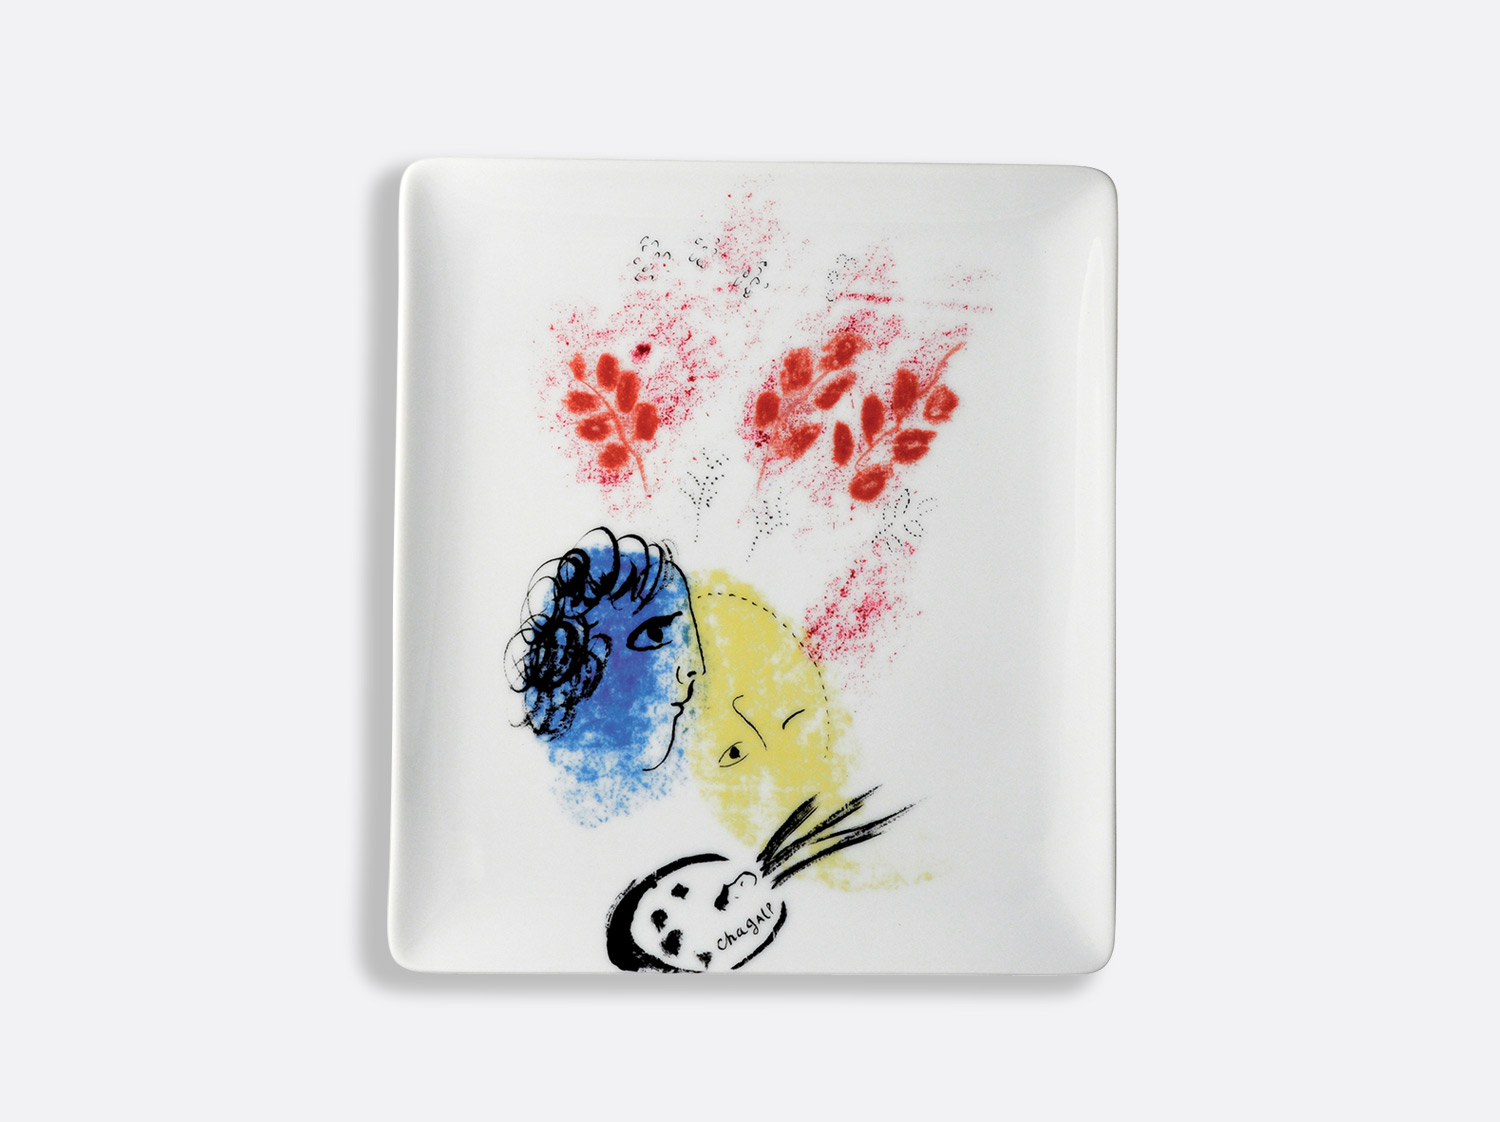 "Plateau 22 x 19,5 cm ""Double visage bleu & jaune"" en porcelaine de la collection Collection Marc chagall Bernardaud"